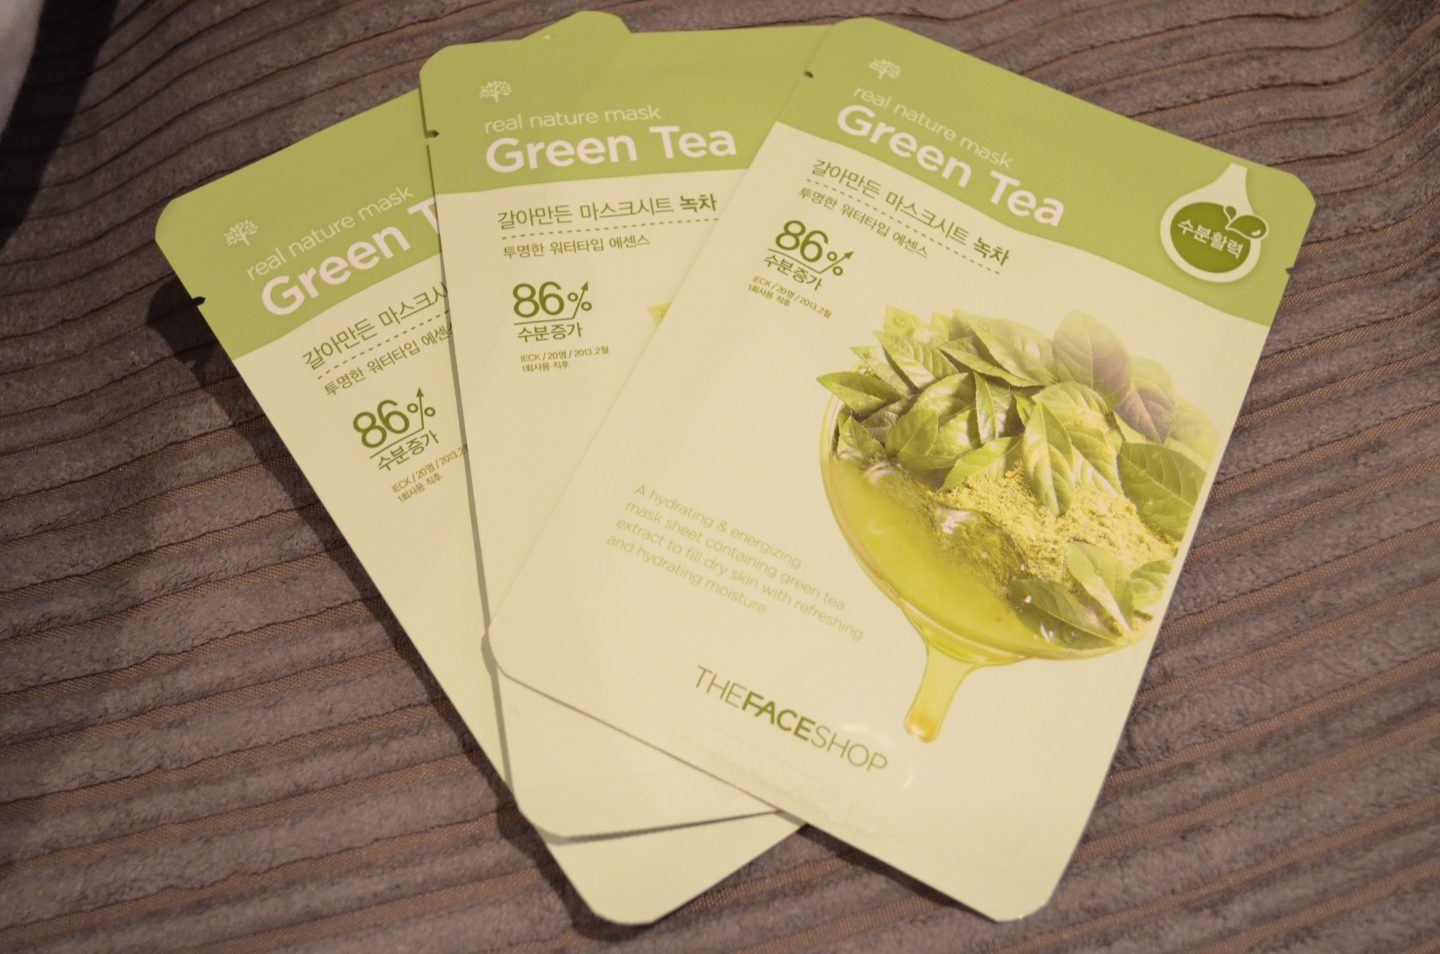 The Face Shop Real Nature Mask – Green Tea